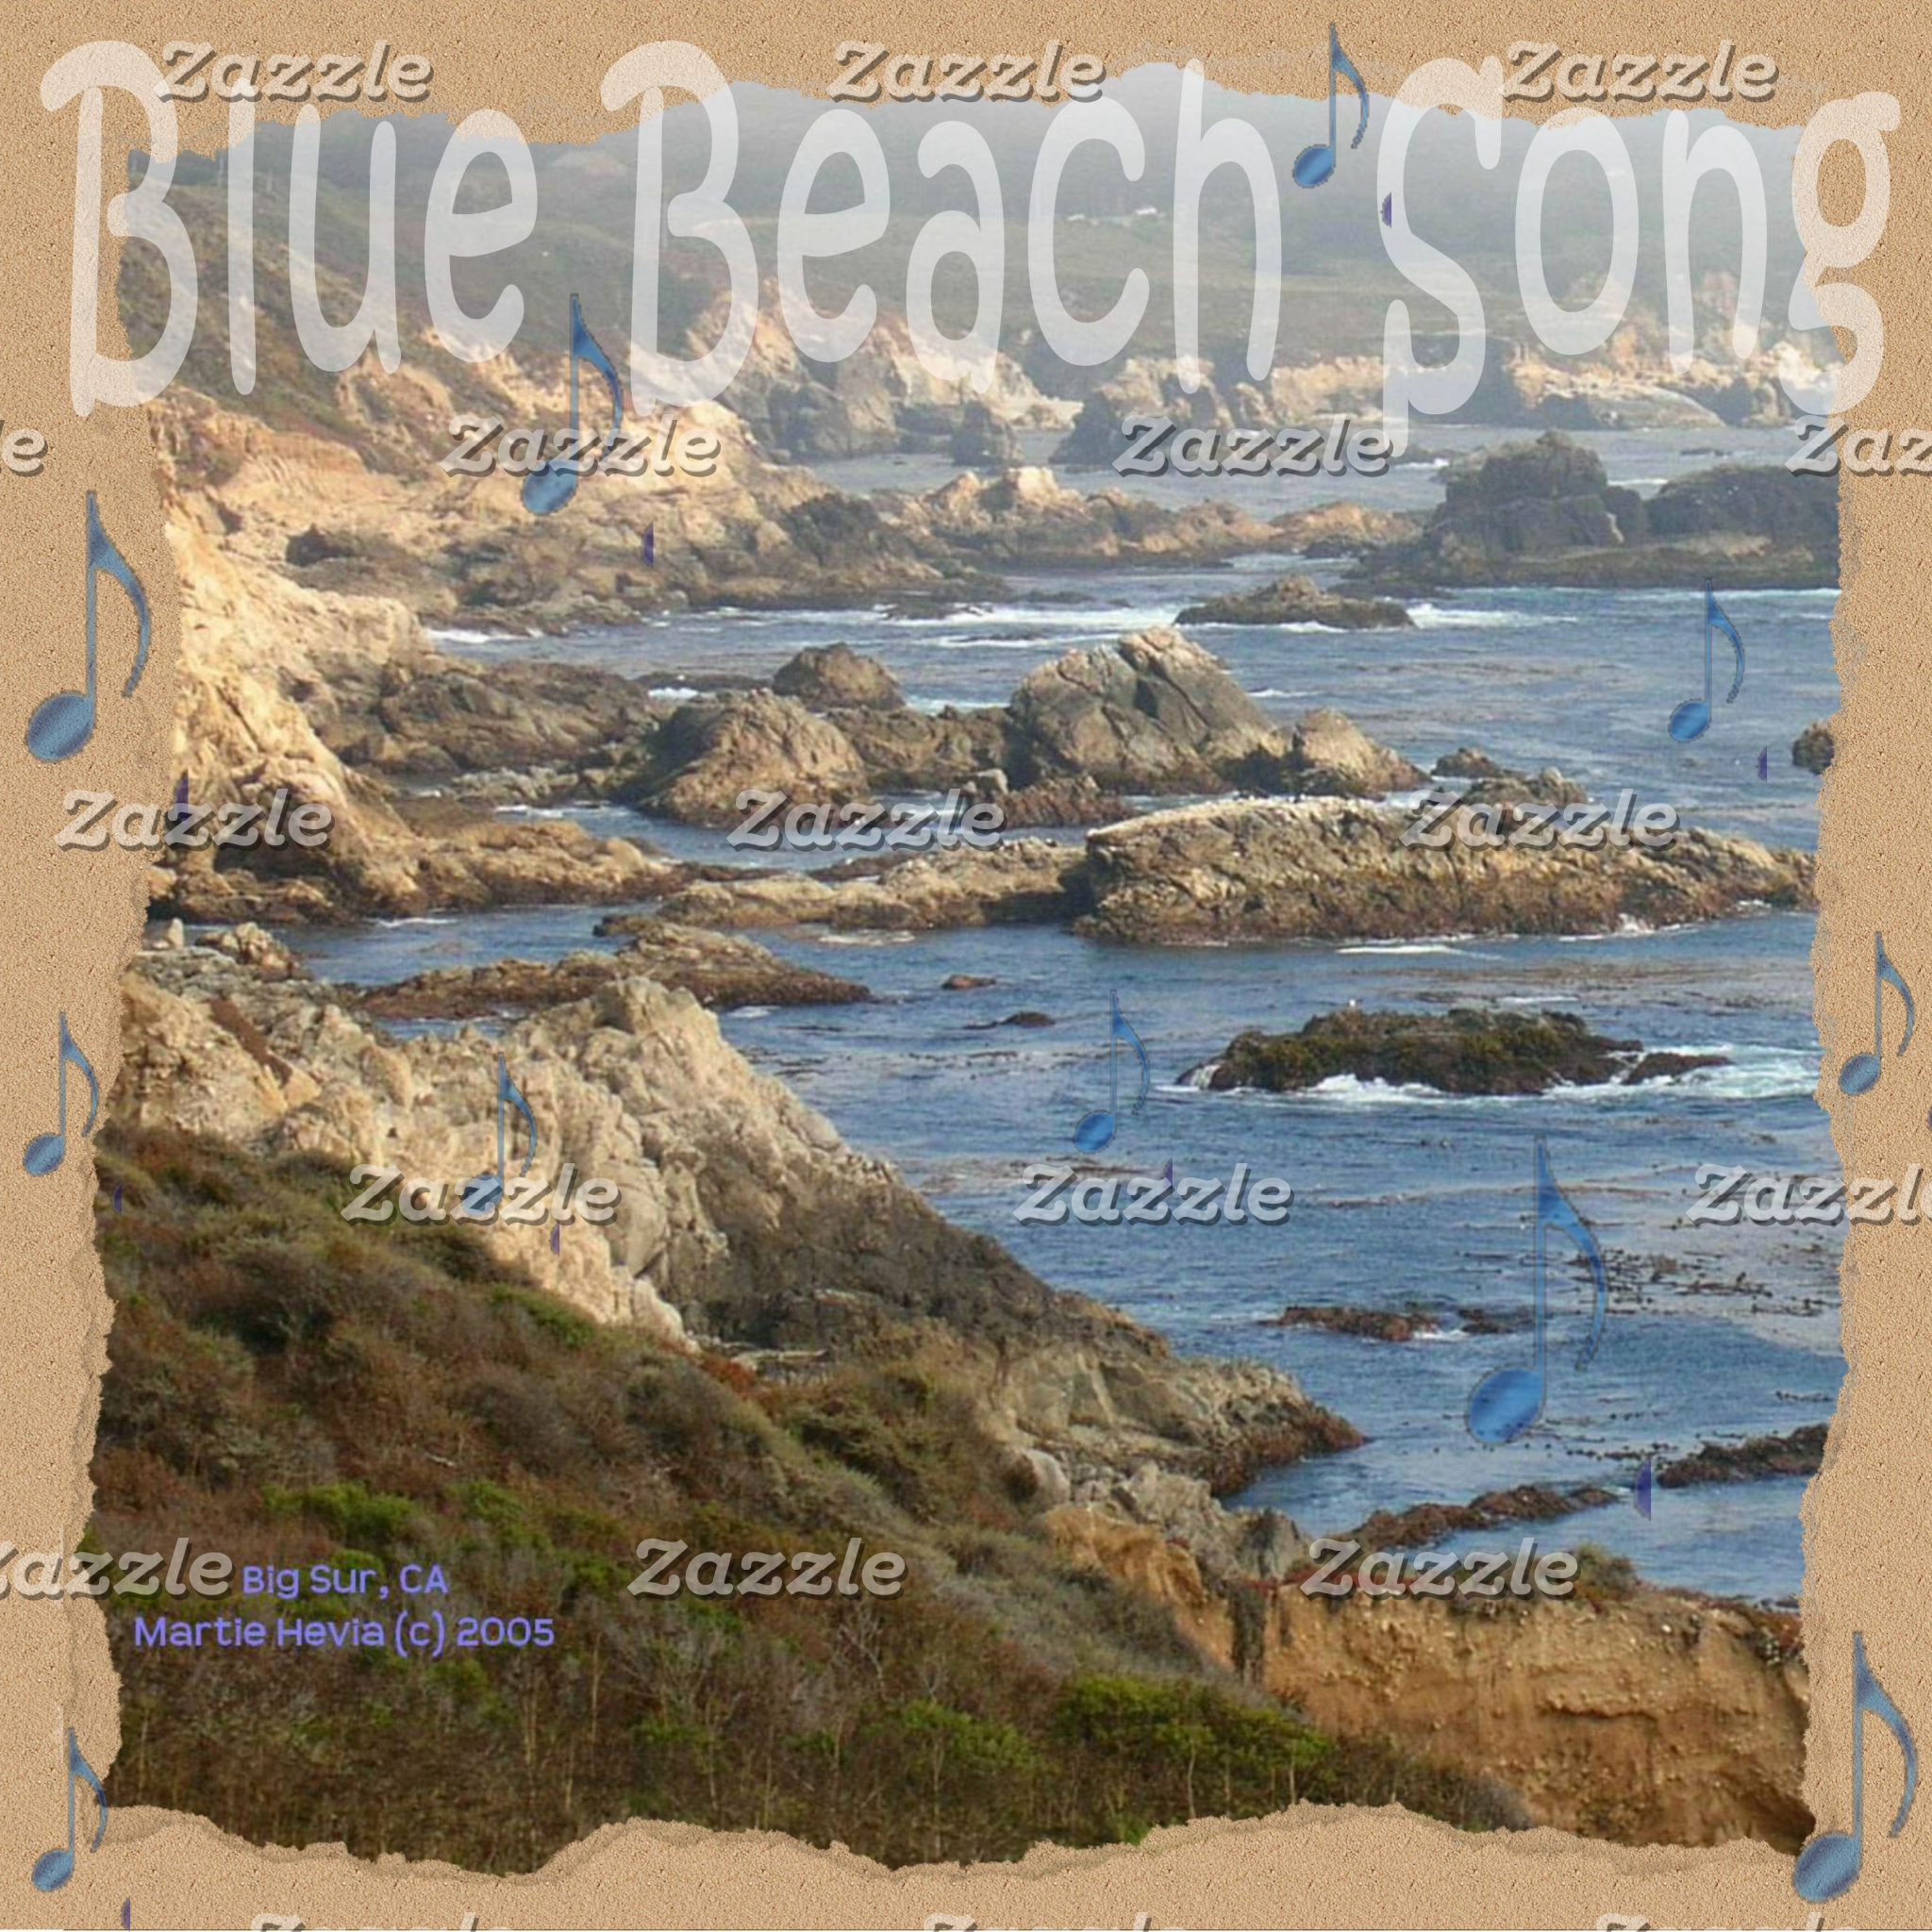 Blue Beach Song™ Promotional